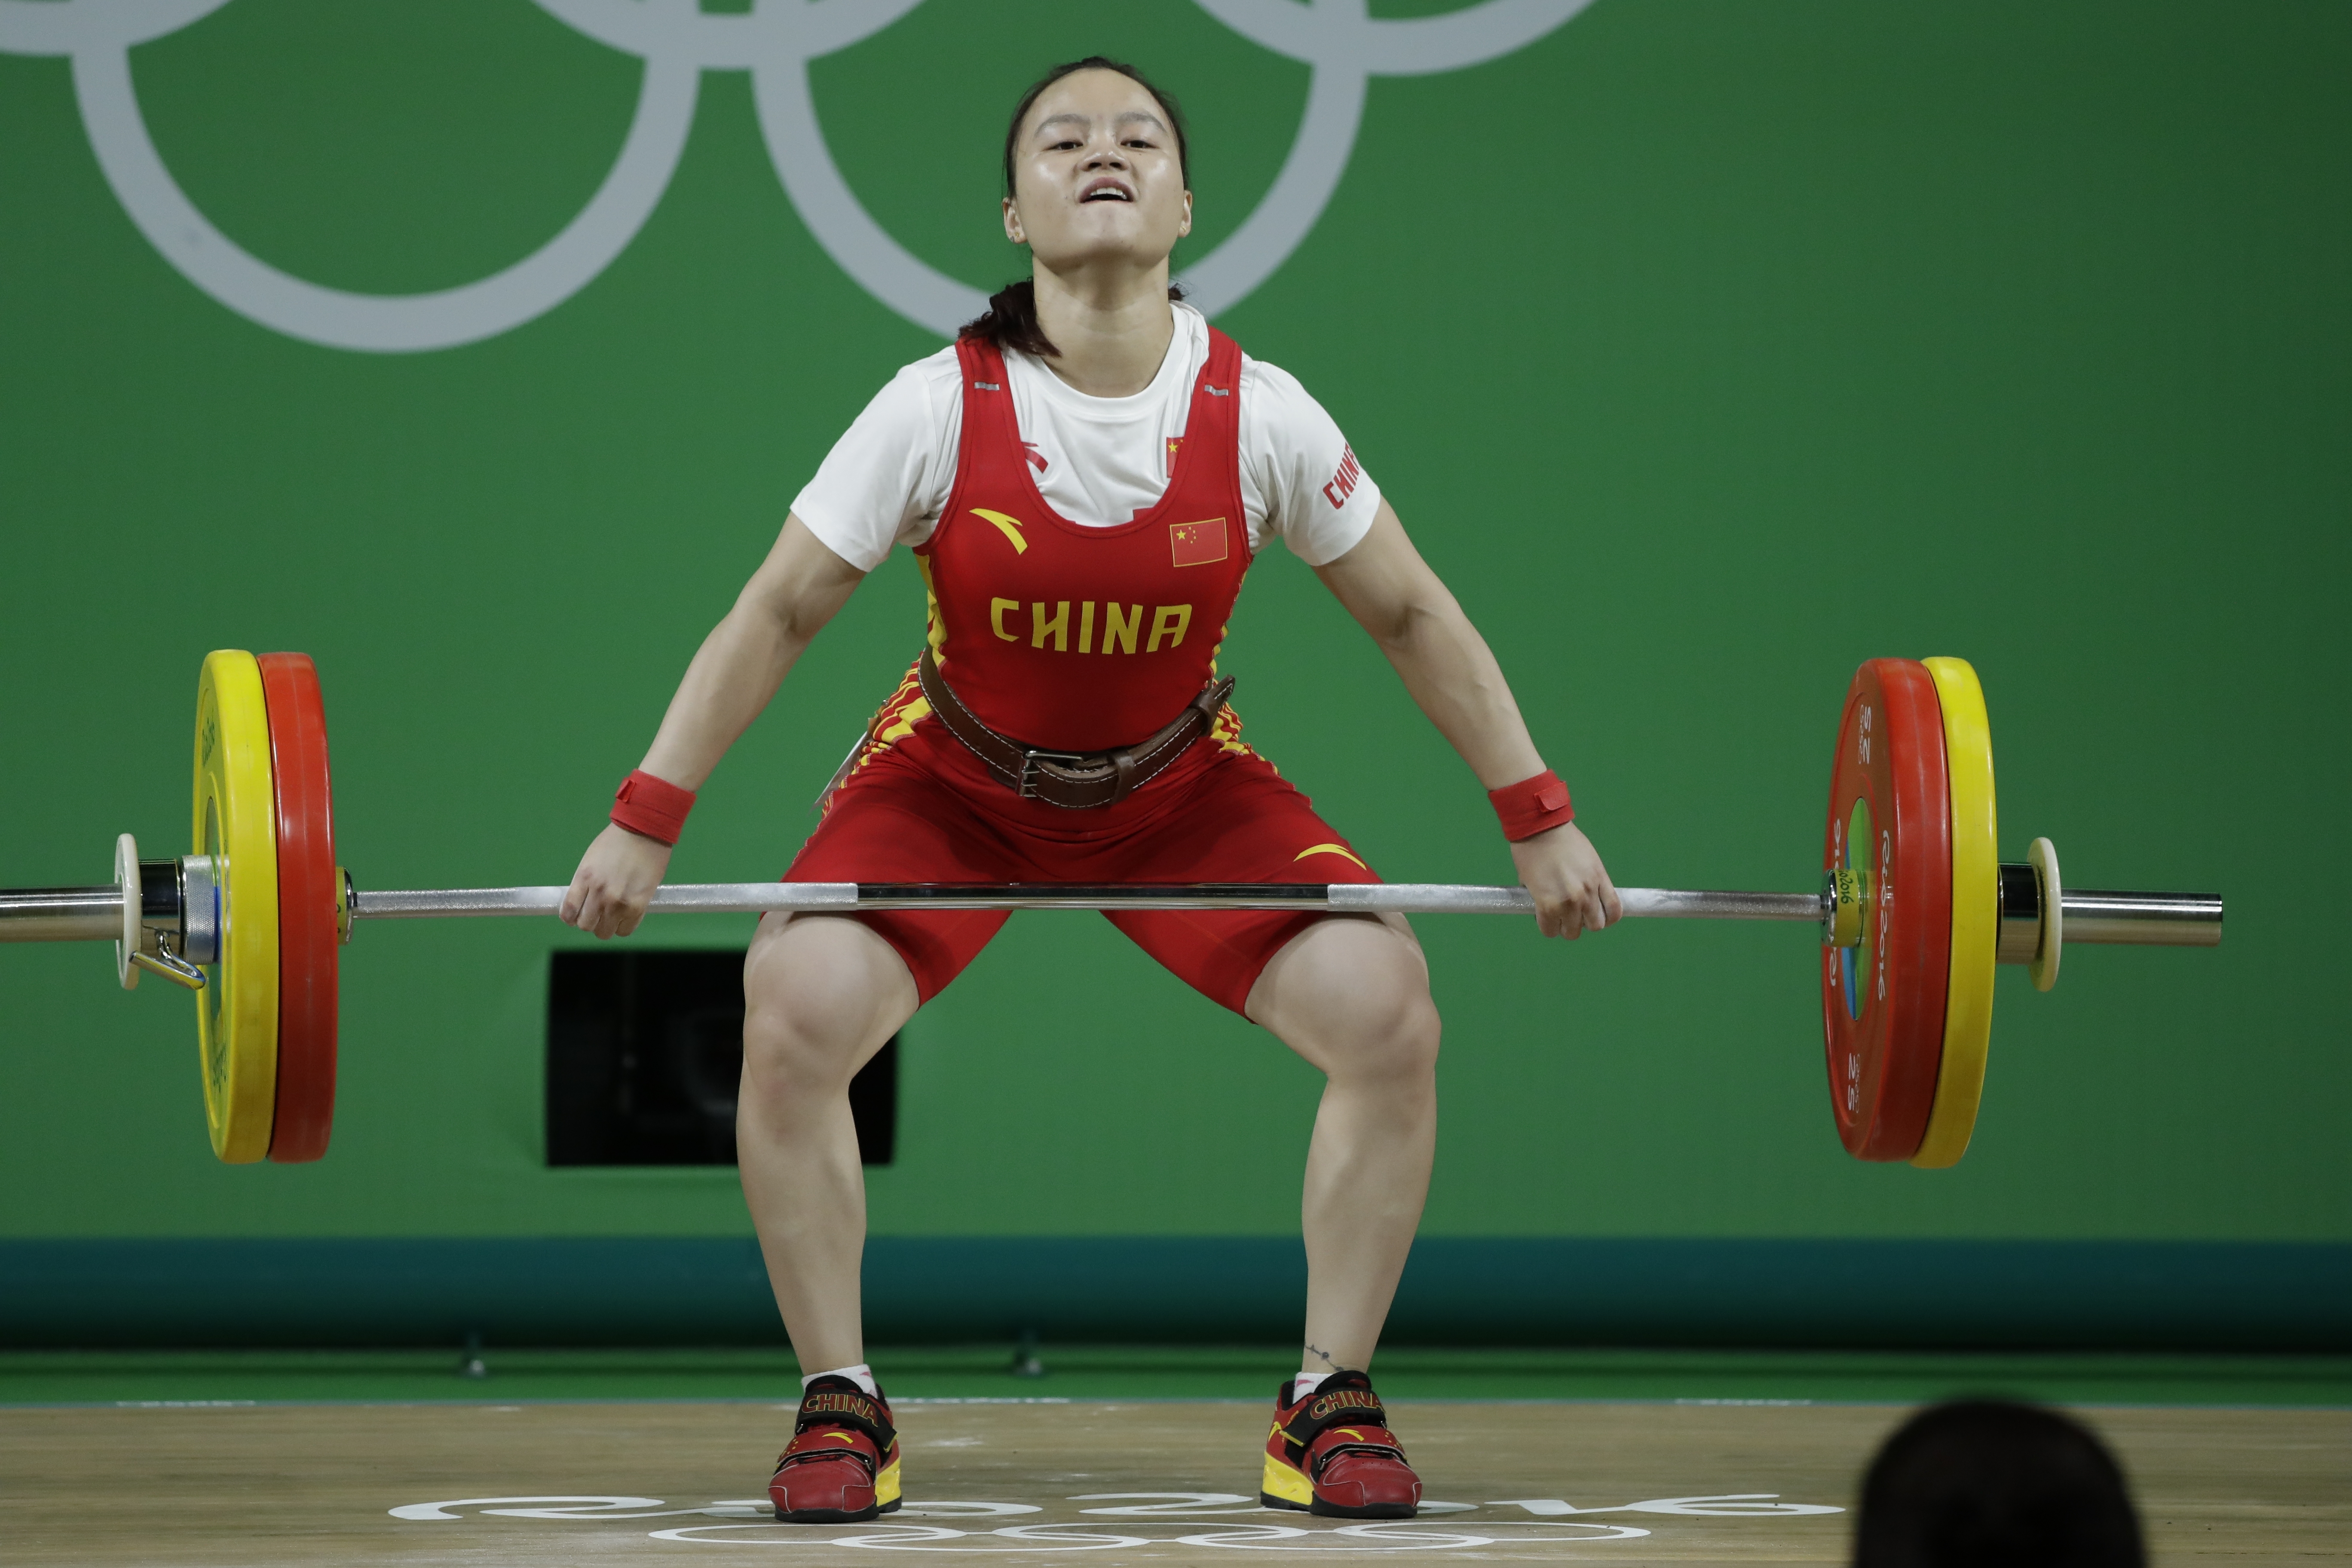 Li Yahun, of China, competes in the women's 53kg weightlifting competition at the 2016 Summer Olympics in Rio de Janeiro, Brazil, Sunday, Aug. 7, 2016. (AP Photo/Mike Groll)